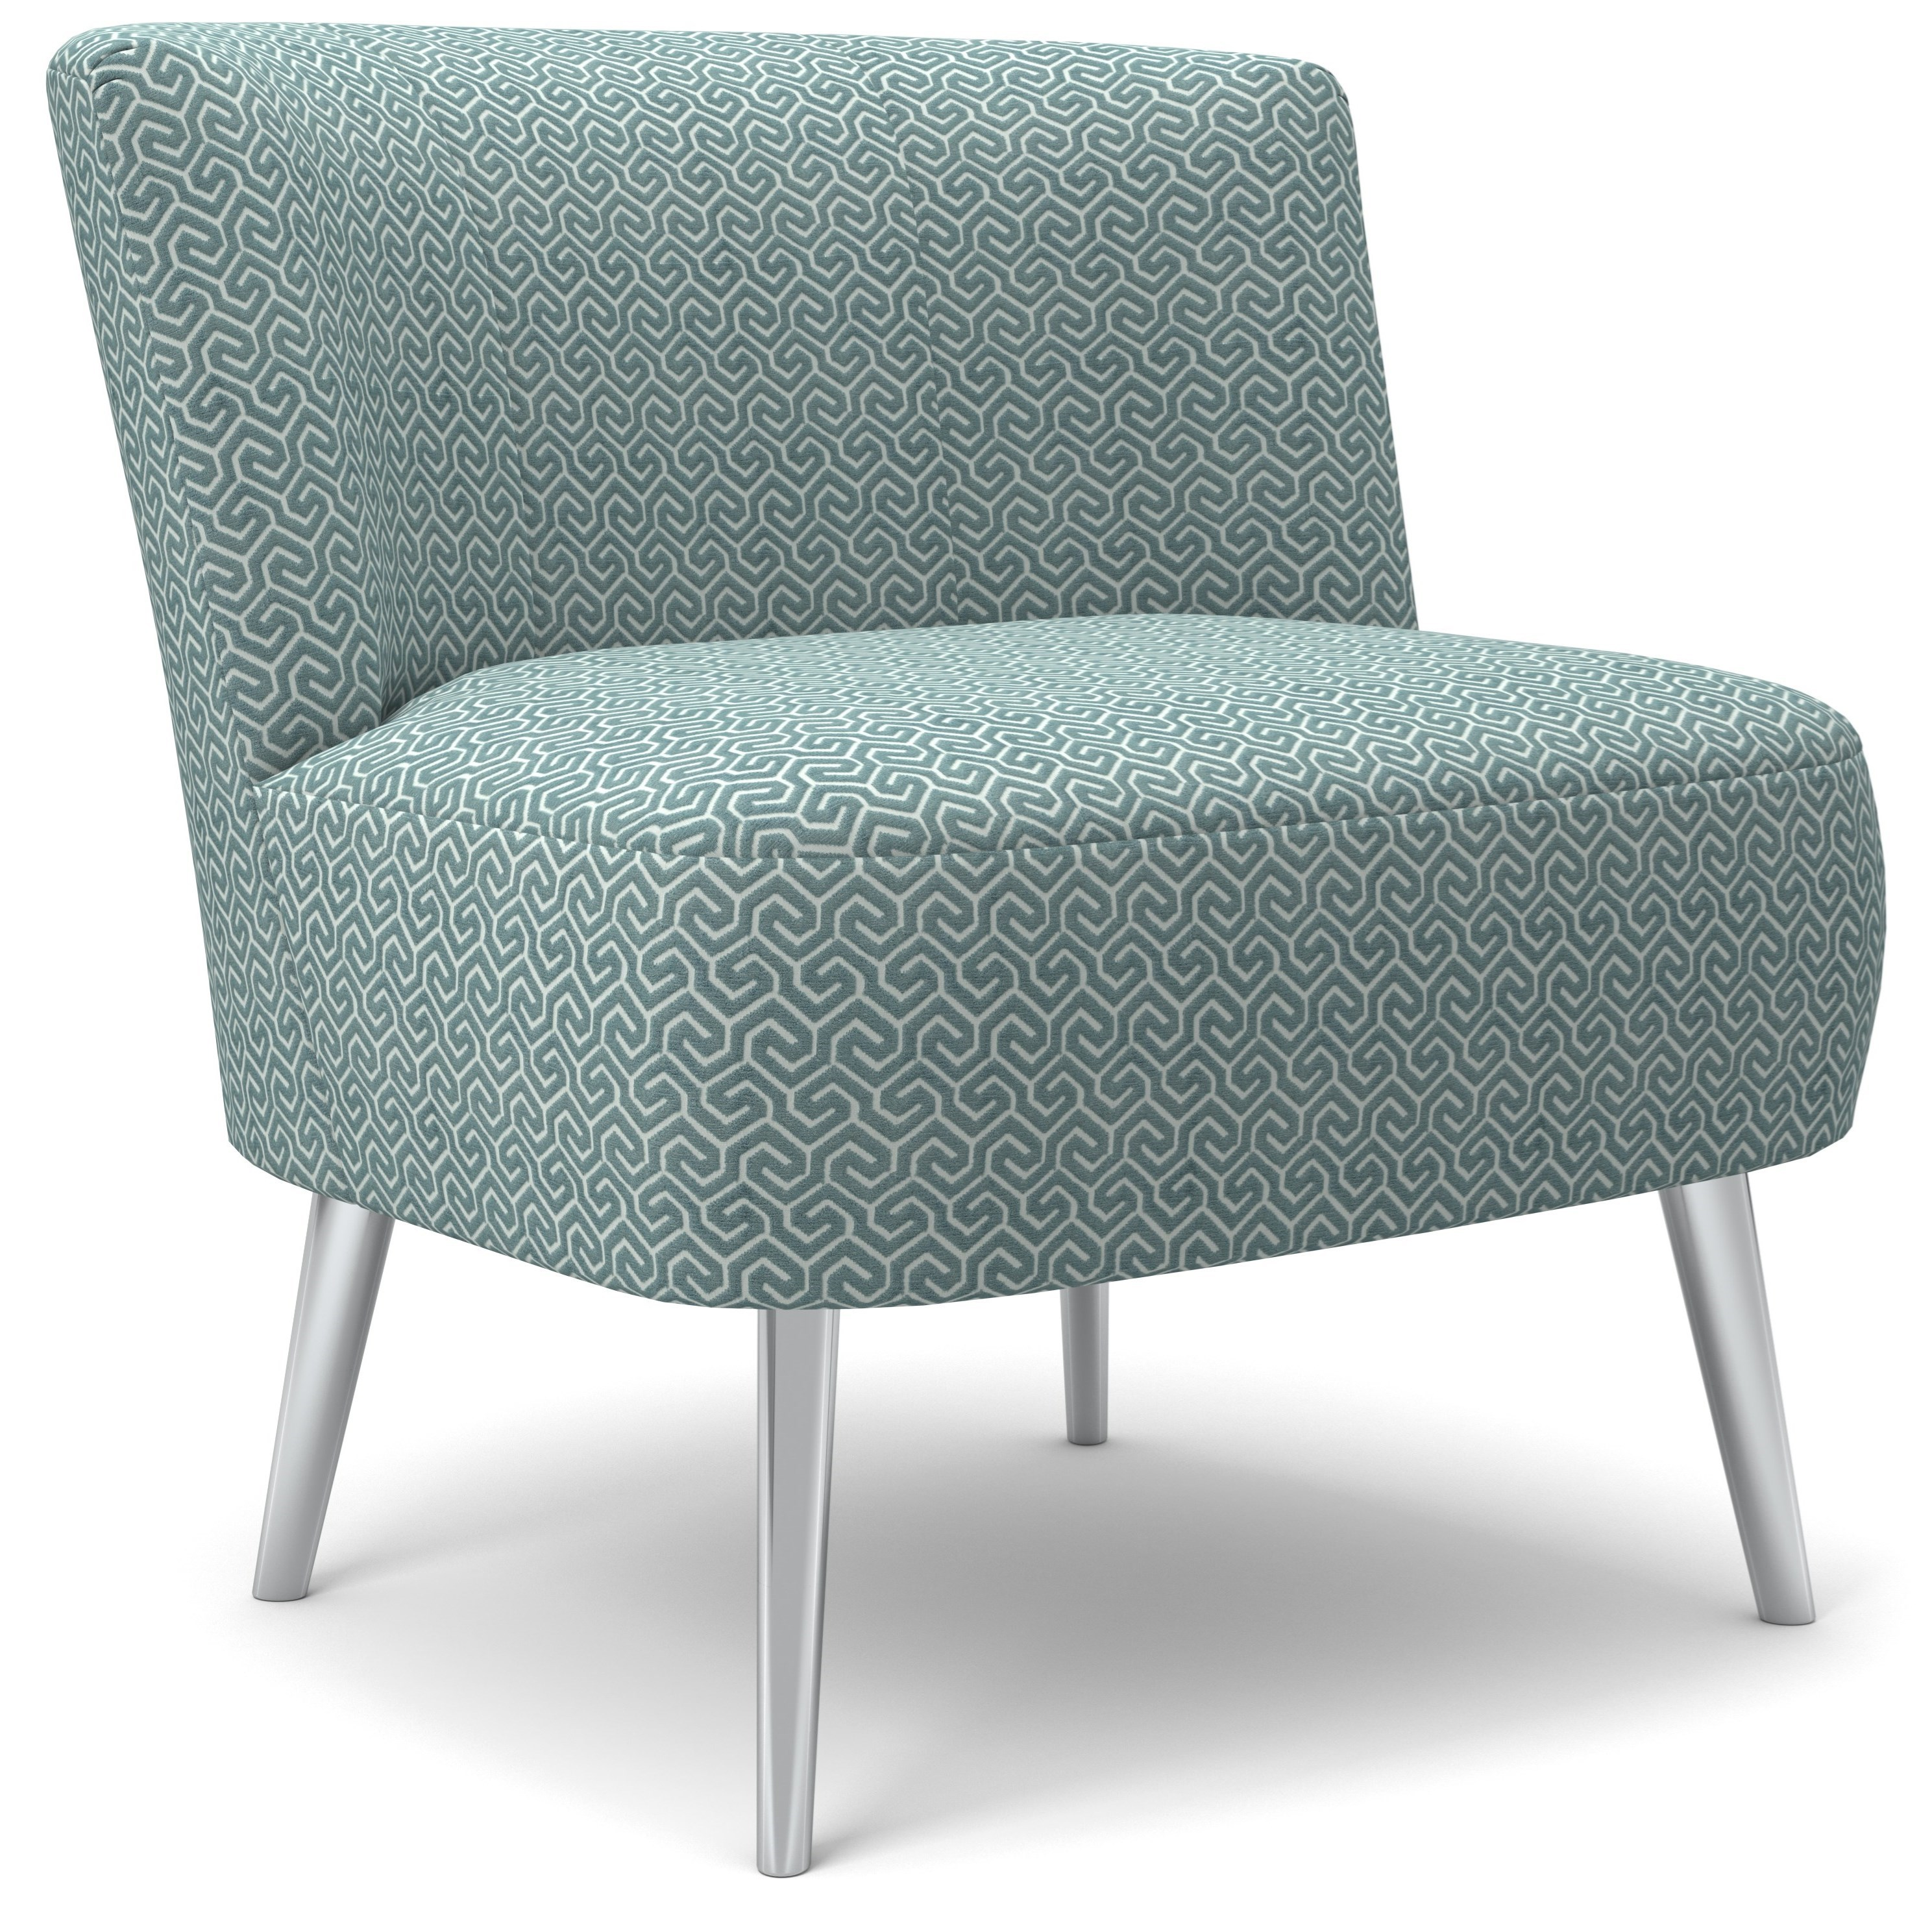 Best Xpress - Fresno Accent Chair by Best Home Furnishings at Baer's Furniture